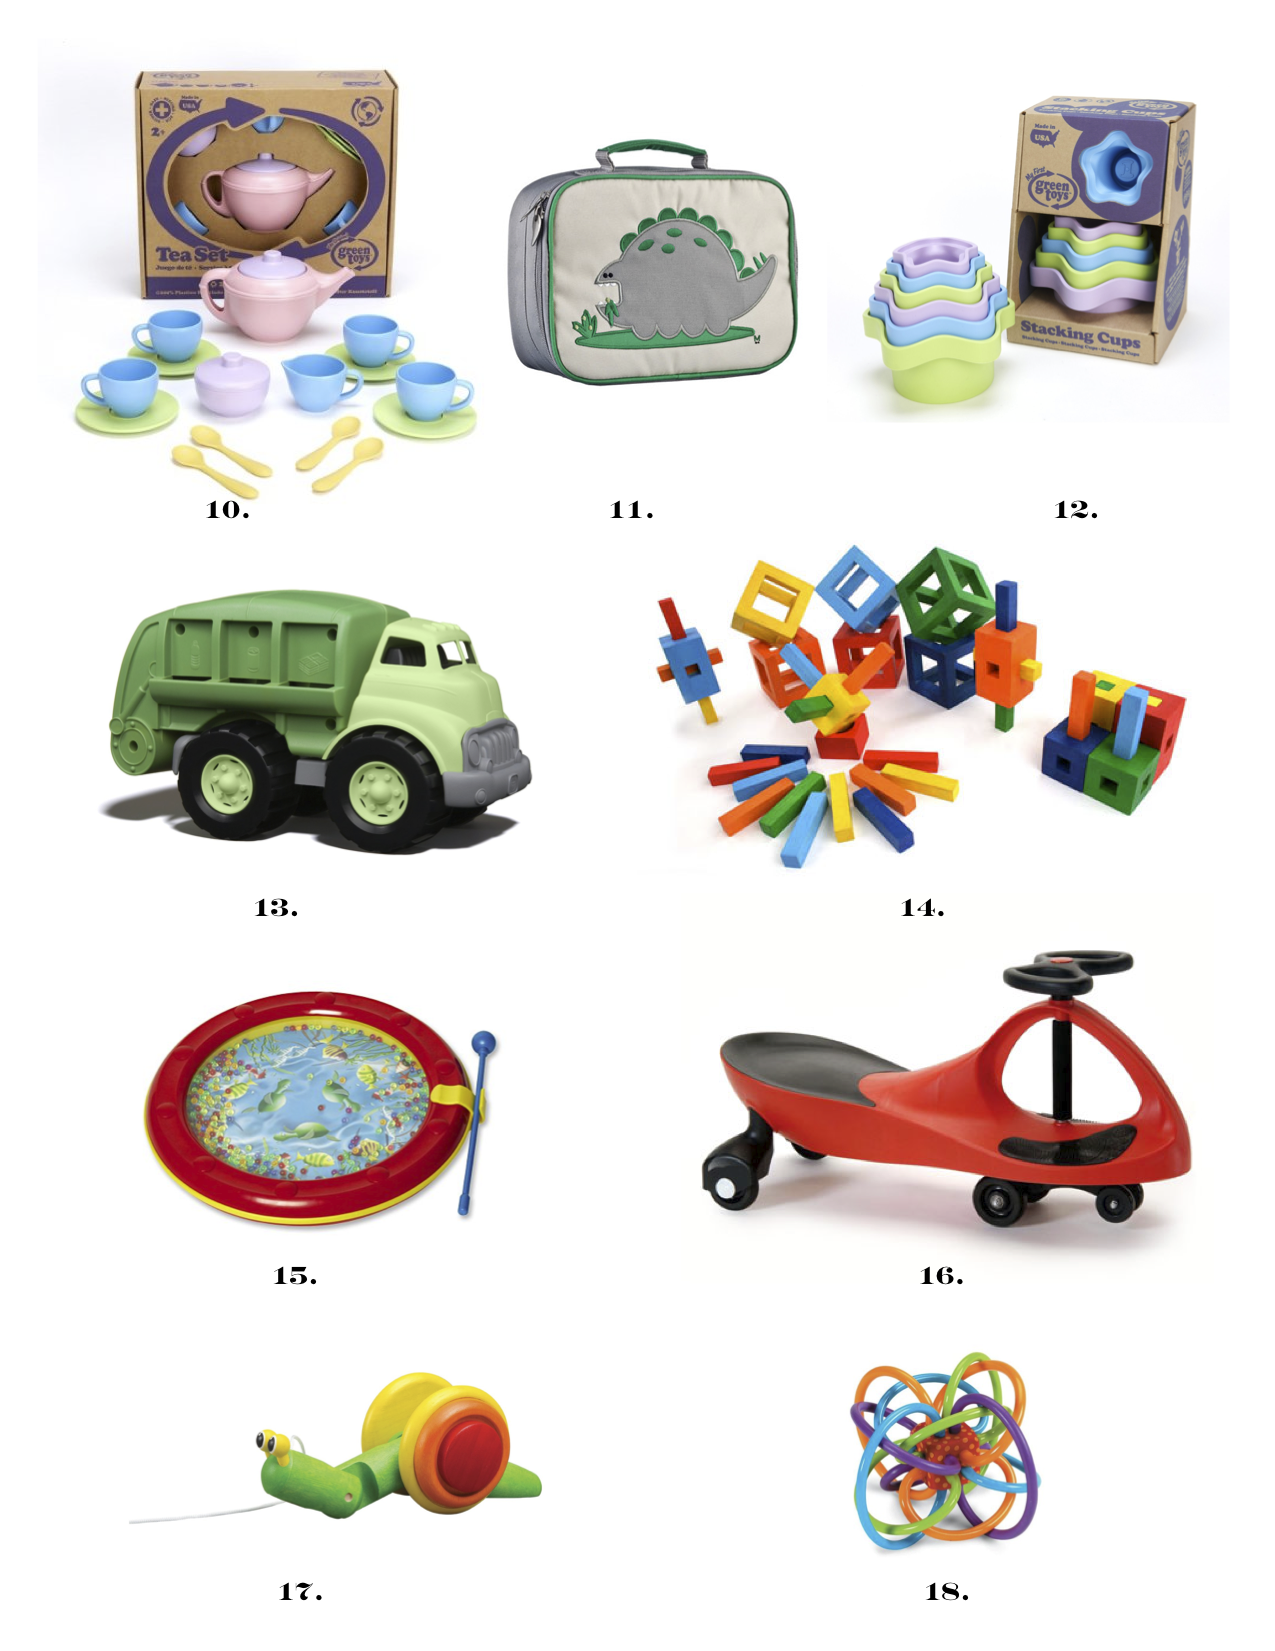 10.  sc 1 st  the bird feed nyc & Holiday Gift Ideas for Kids